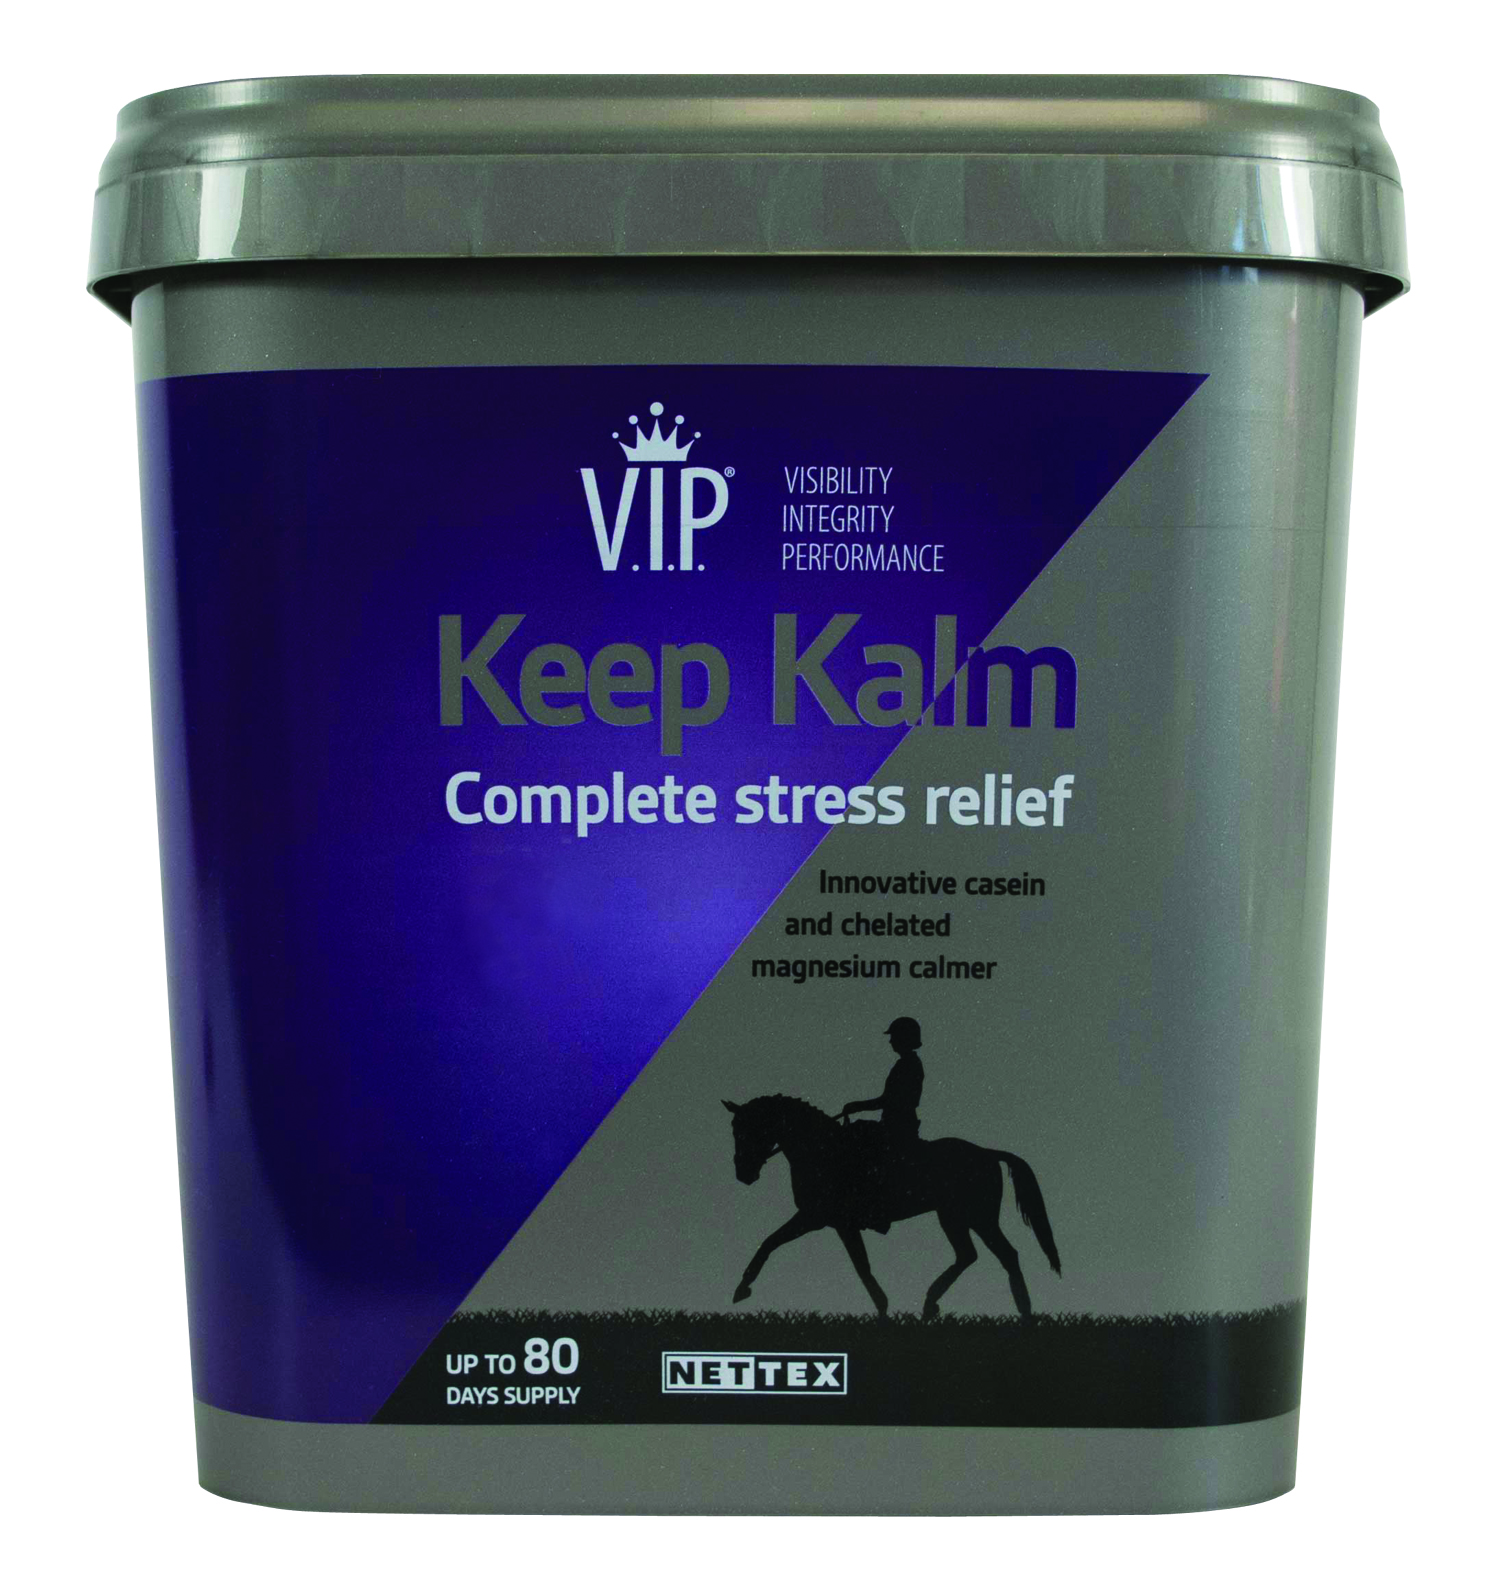 Keep-Kalm_VIP_WITHOUT VET approved-emailable.JPG